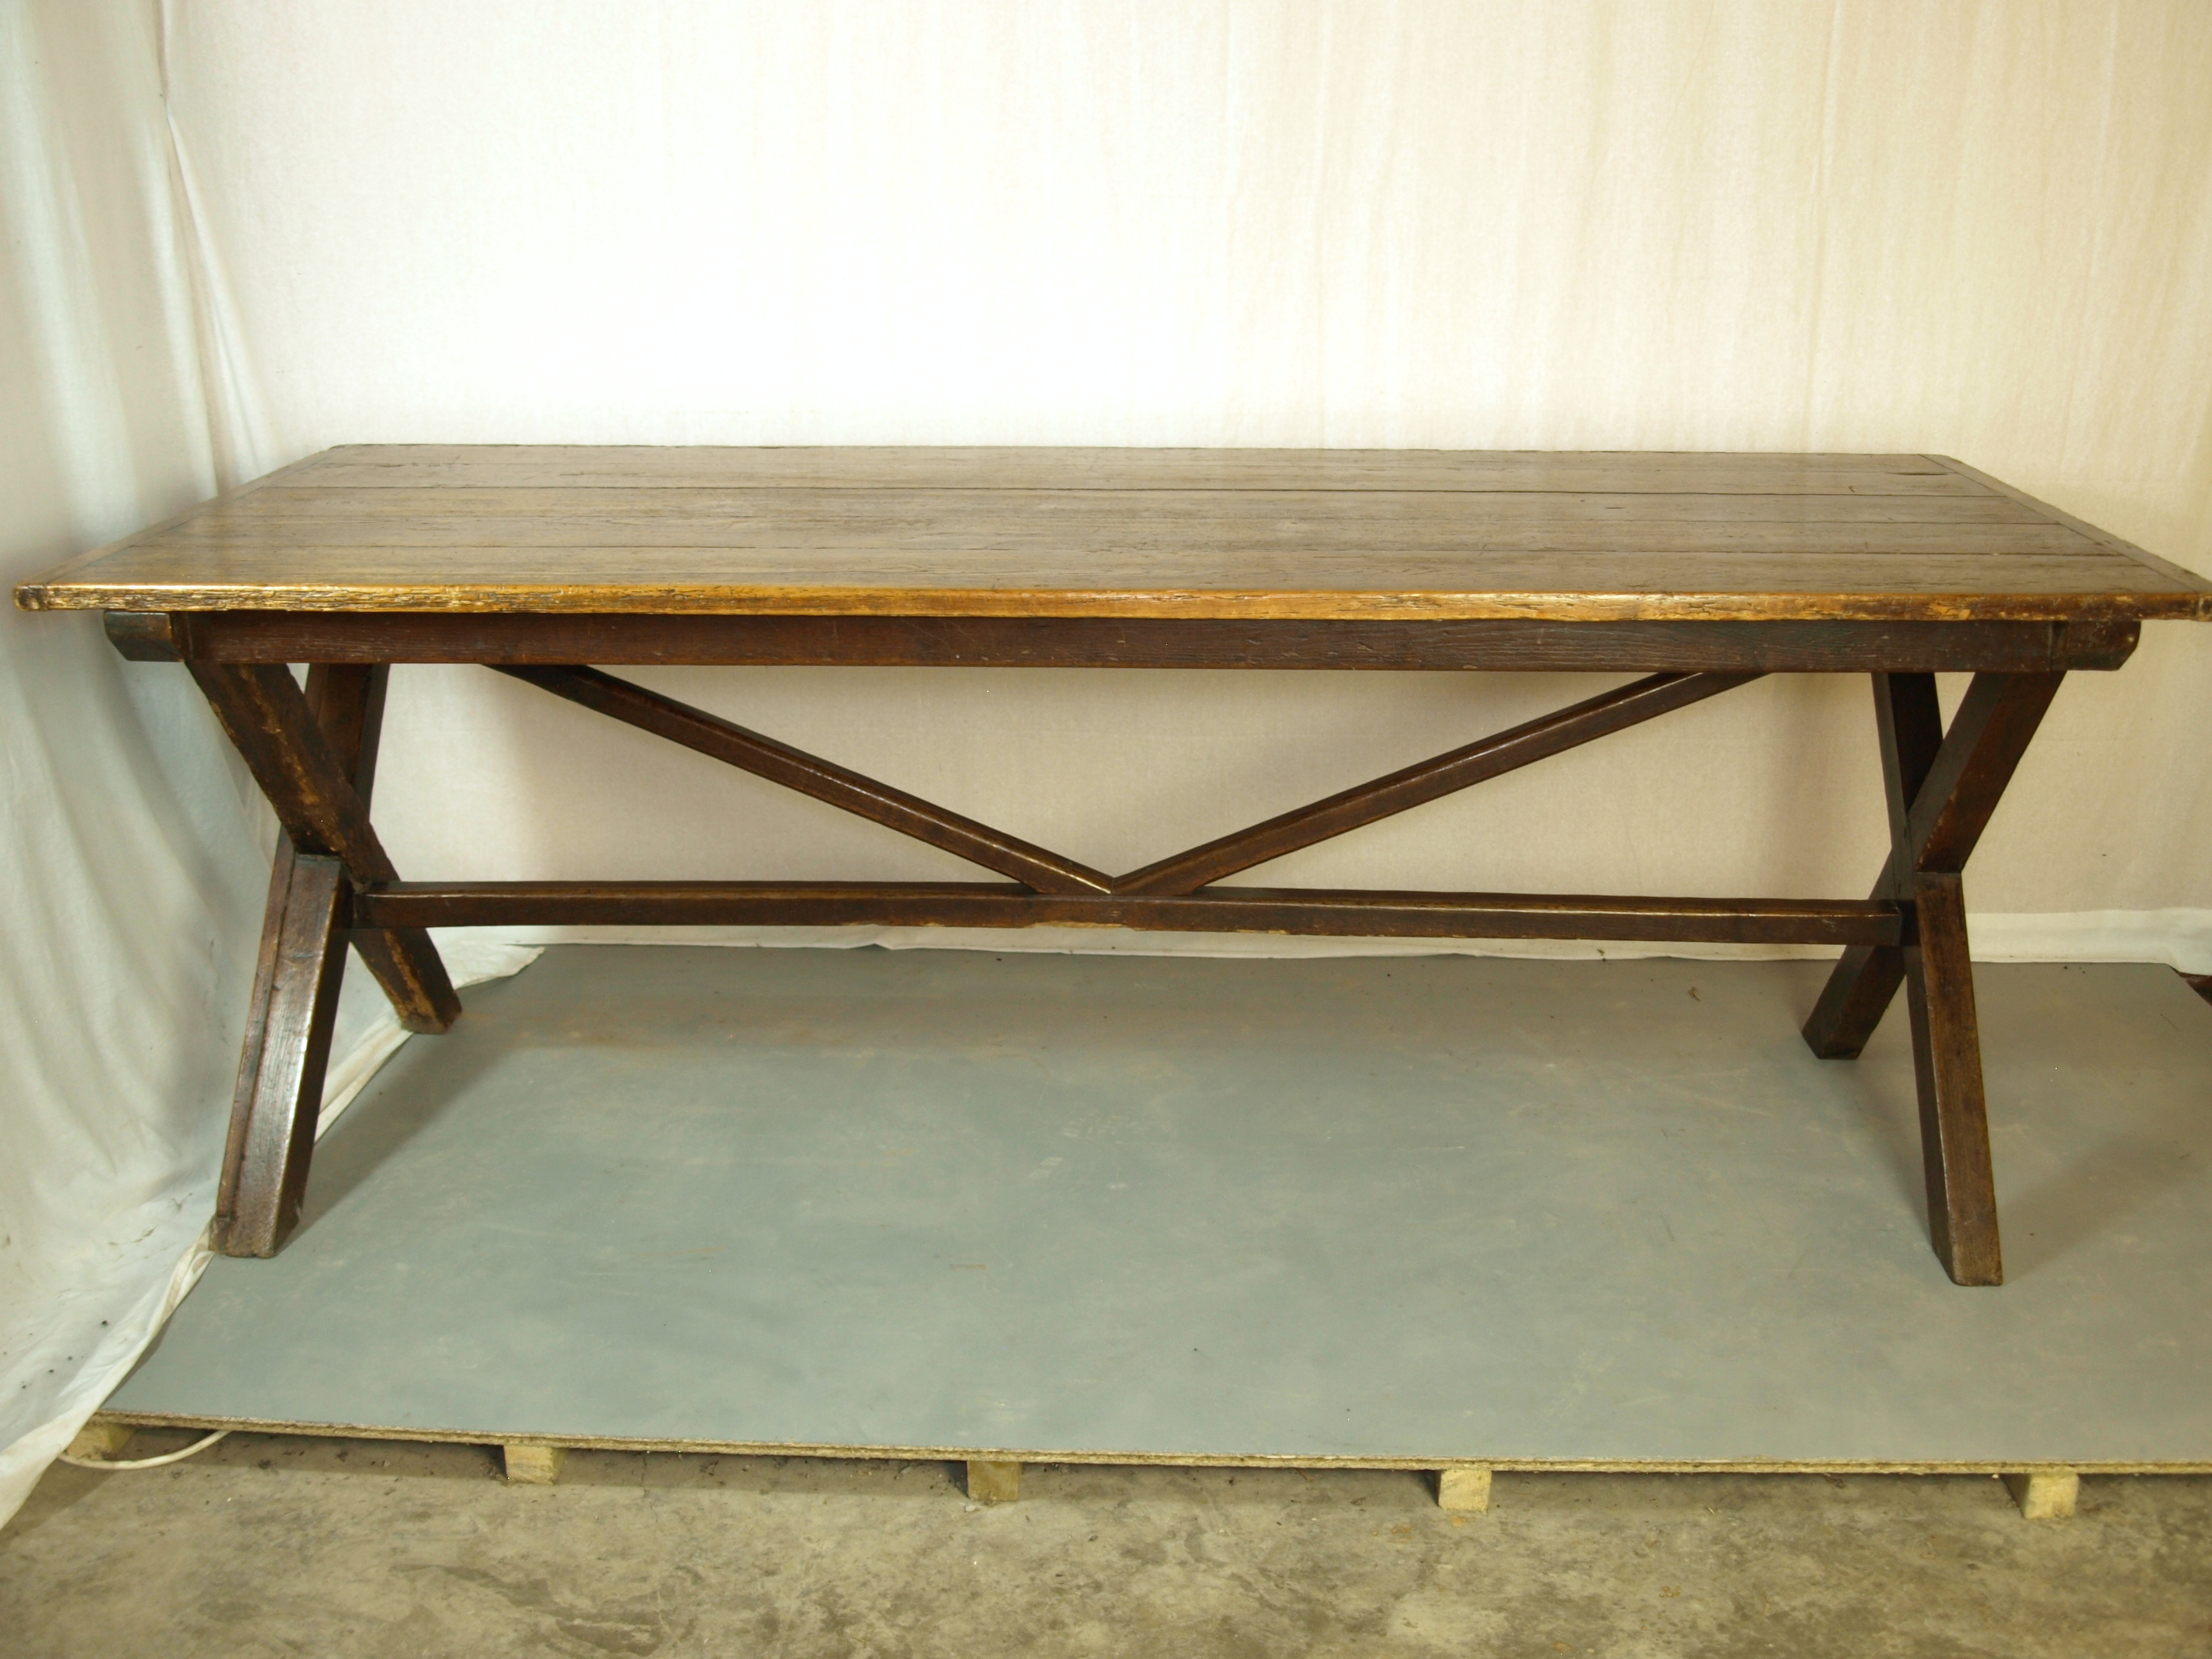 CROSS FRAME TABLE